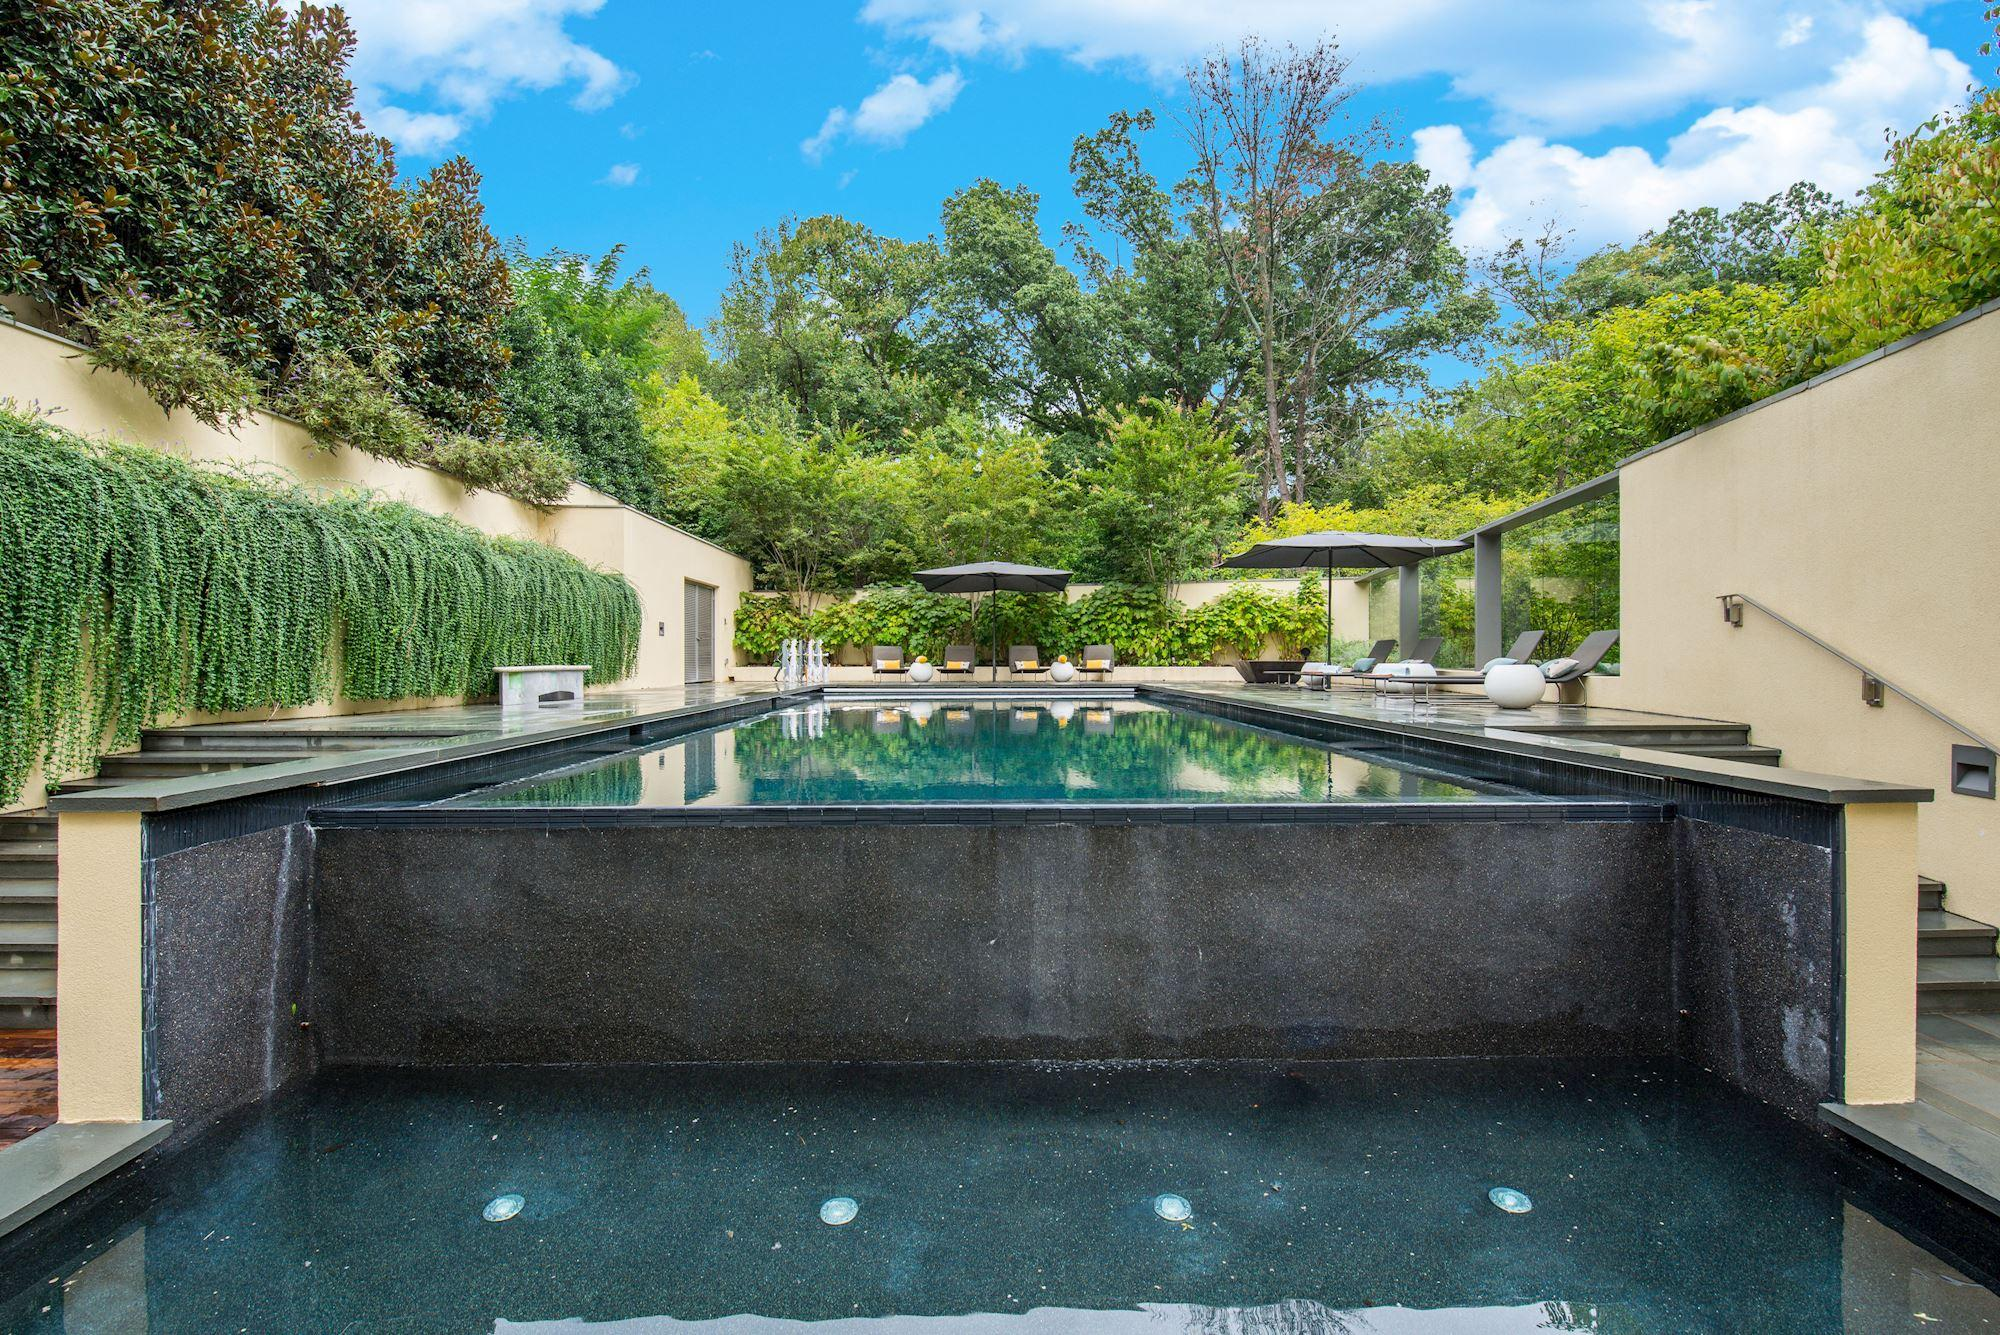 This gorgeous home listed by Washington Fine Properties is a true hidden gem overlooking Rock Creek Park. Built in 2010, it sits on a nearly 18,000-square-foot lot and is currently listed for $11.5 million, down $2 million from the original $13.5 million listing price. Natural light abounds in this modern marvel, particularly thanks to the floor to ceiling windows in the two-story great room with 180 degree park views. Everything about the home screams luxury from the eight-car garage to the custom ebonized white oak cabinetry and Gaggenau ovens in the kitchen, the 21-seat media room with a star light pattern fiber optic ceiling, the owner's suite with dual water closets, spa shower, soaking tub and make-up and hair salon. Enjoy the gallery and visit  wfp.com for more info on the lot. (Image: HomeVisit)